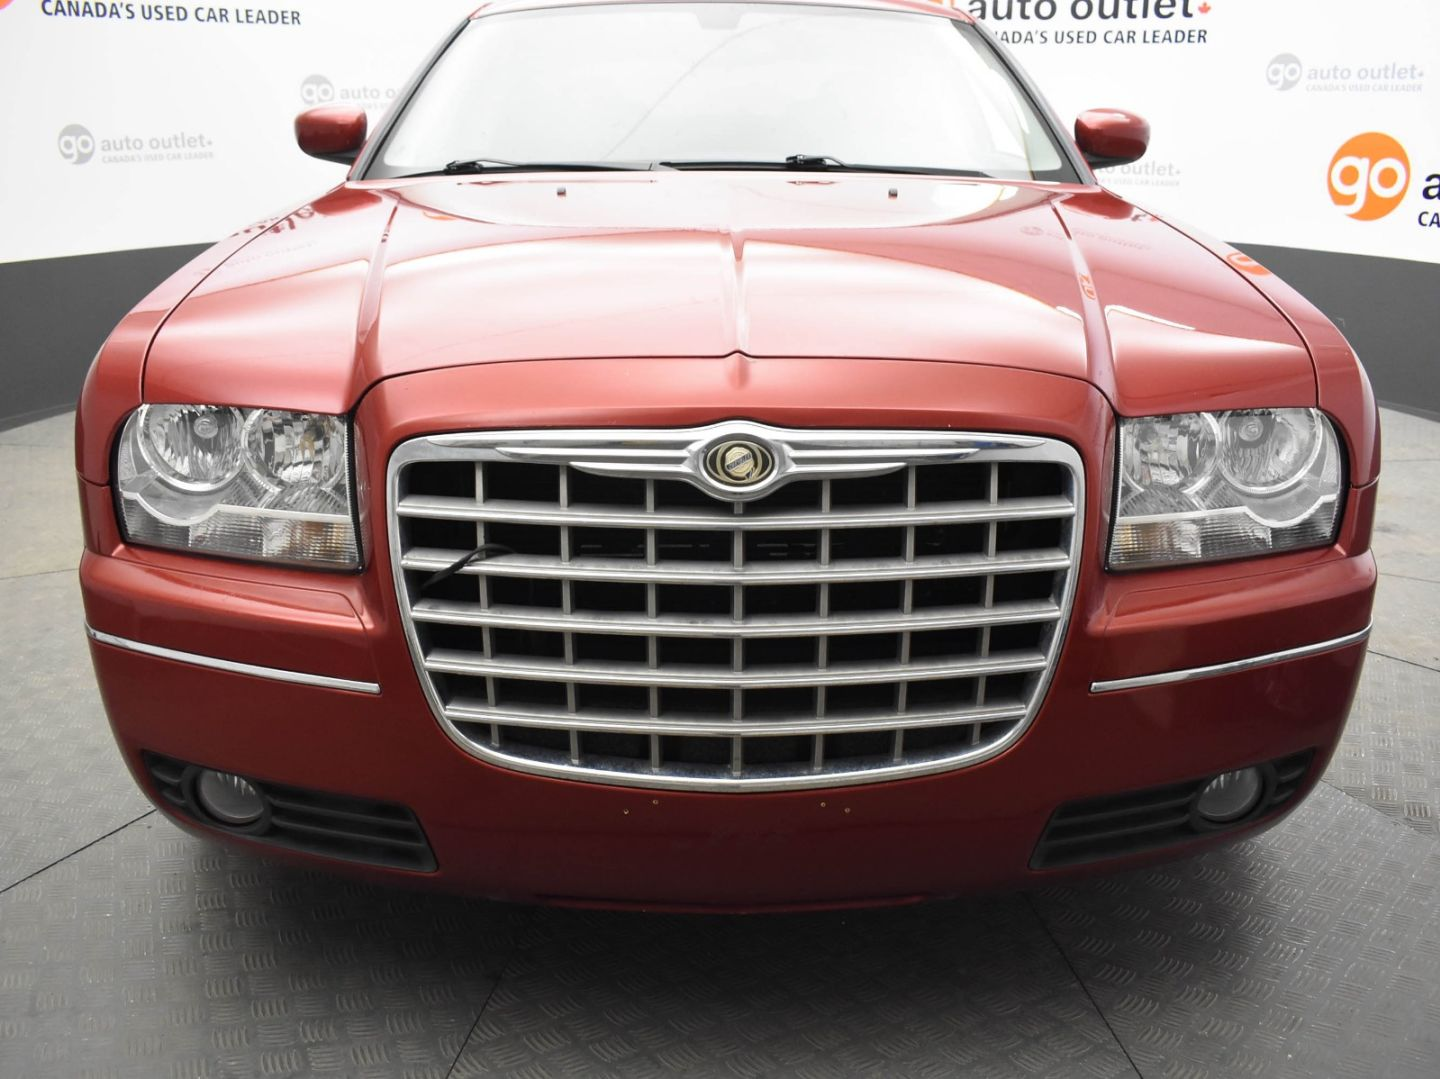 2009 Chrysler 300 Touring for sale in Leduc, Alberta